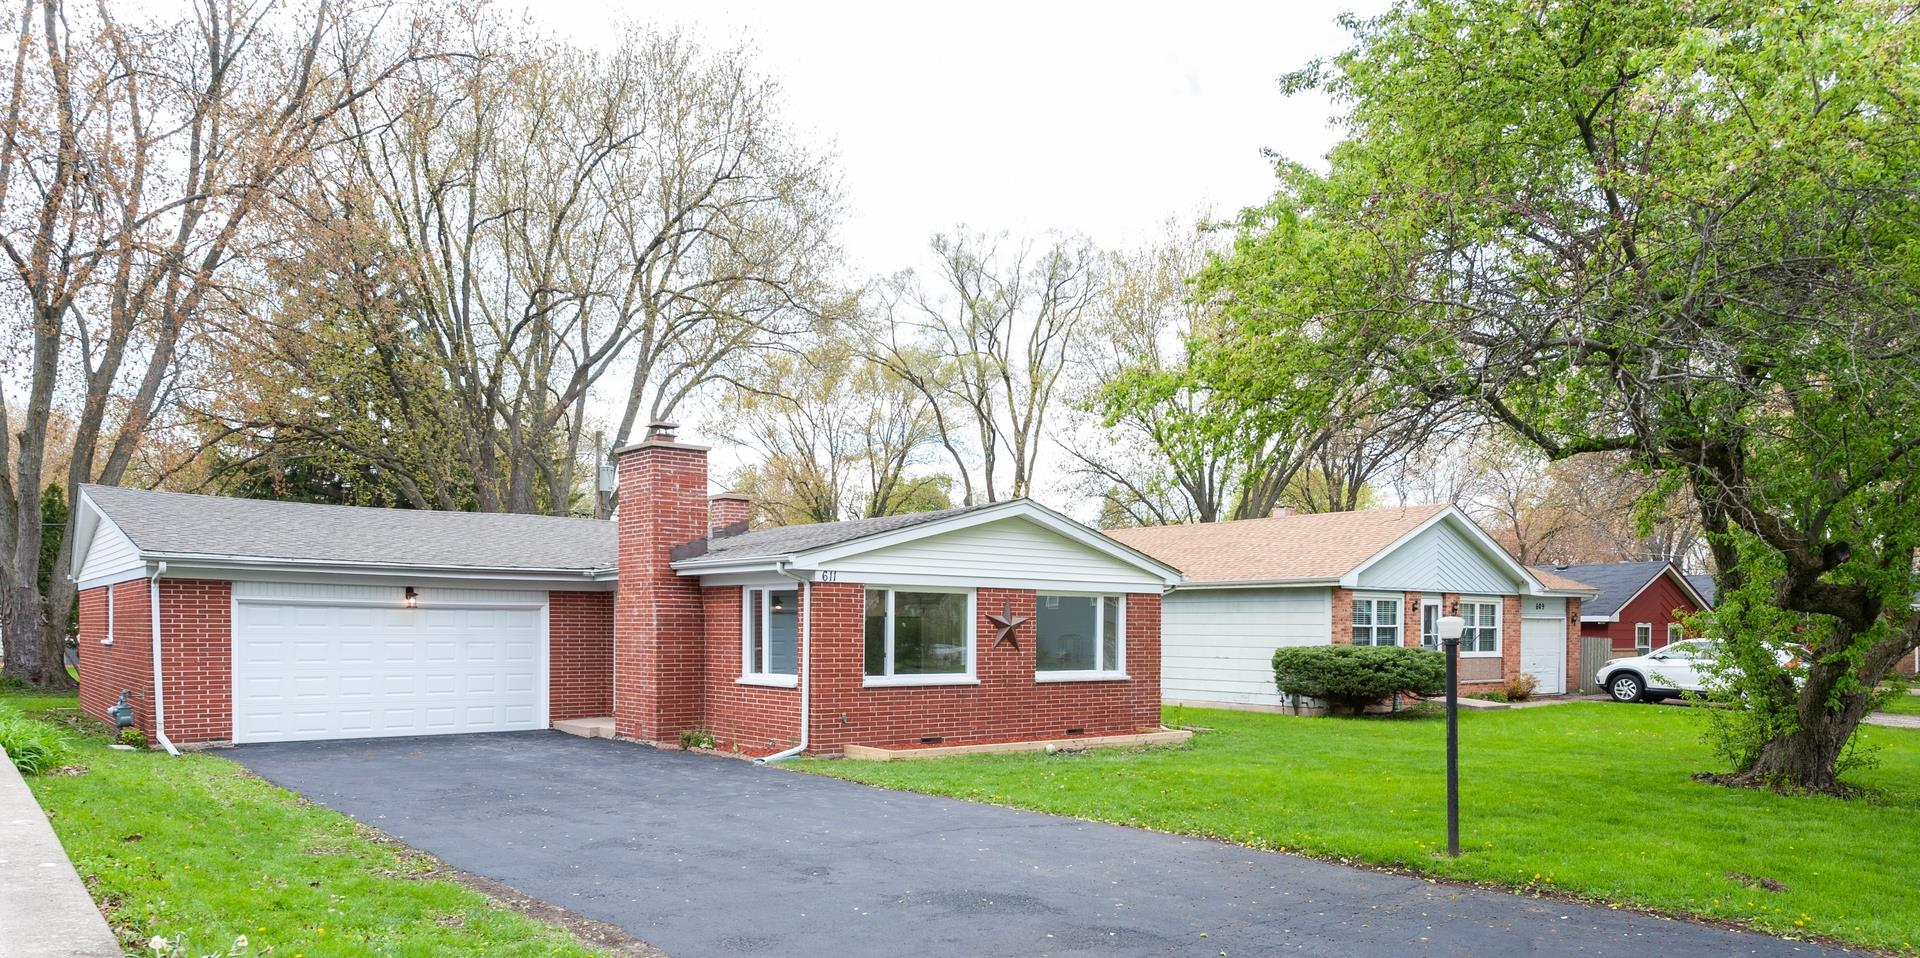 611 McHenry Avenue, McHenry, IL 60050 - #: 10712794